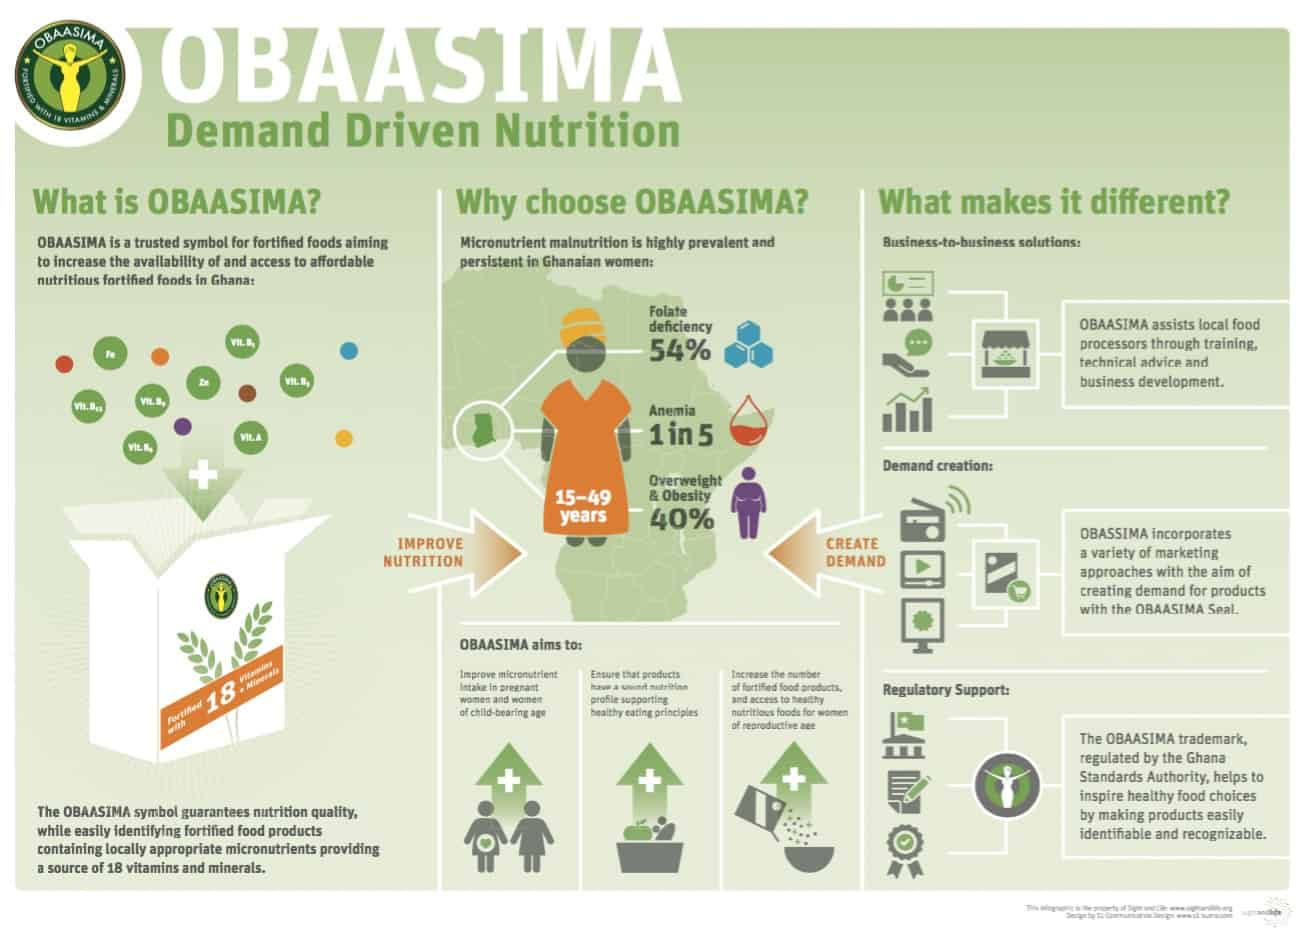 Obaasima, demand generation, Ghana, women, nutrition